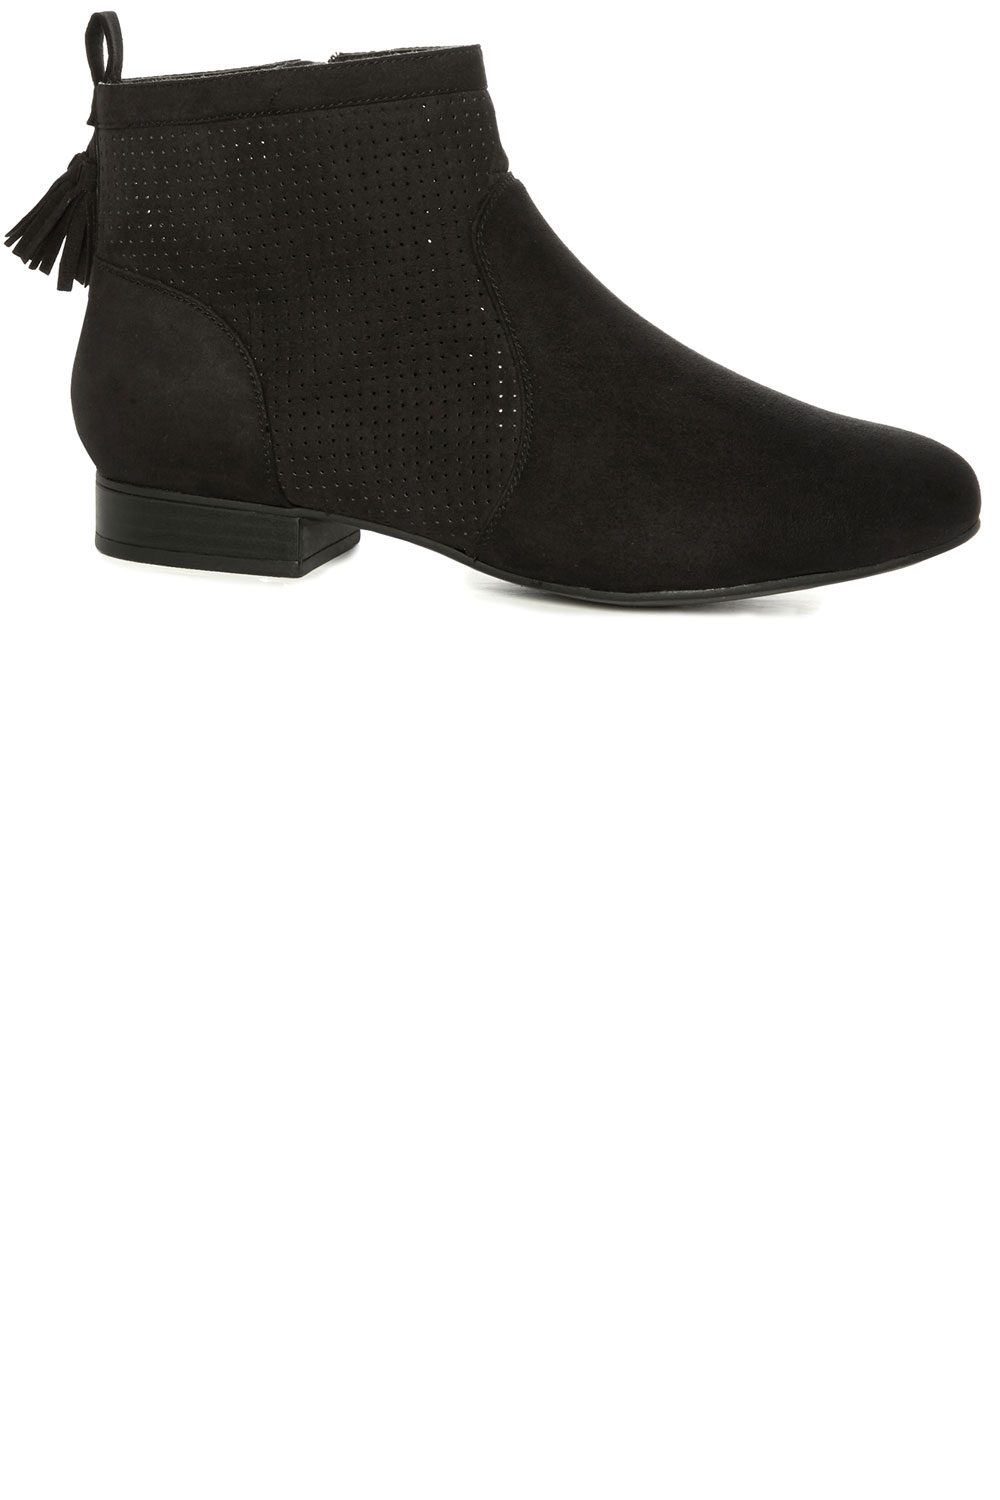 the best primark boots to shop now look